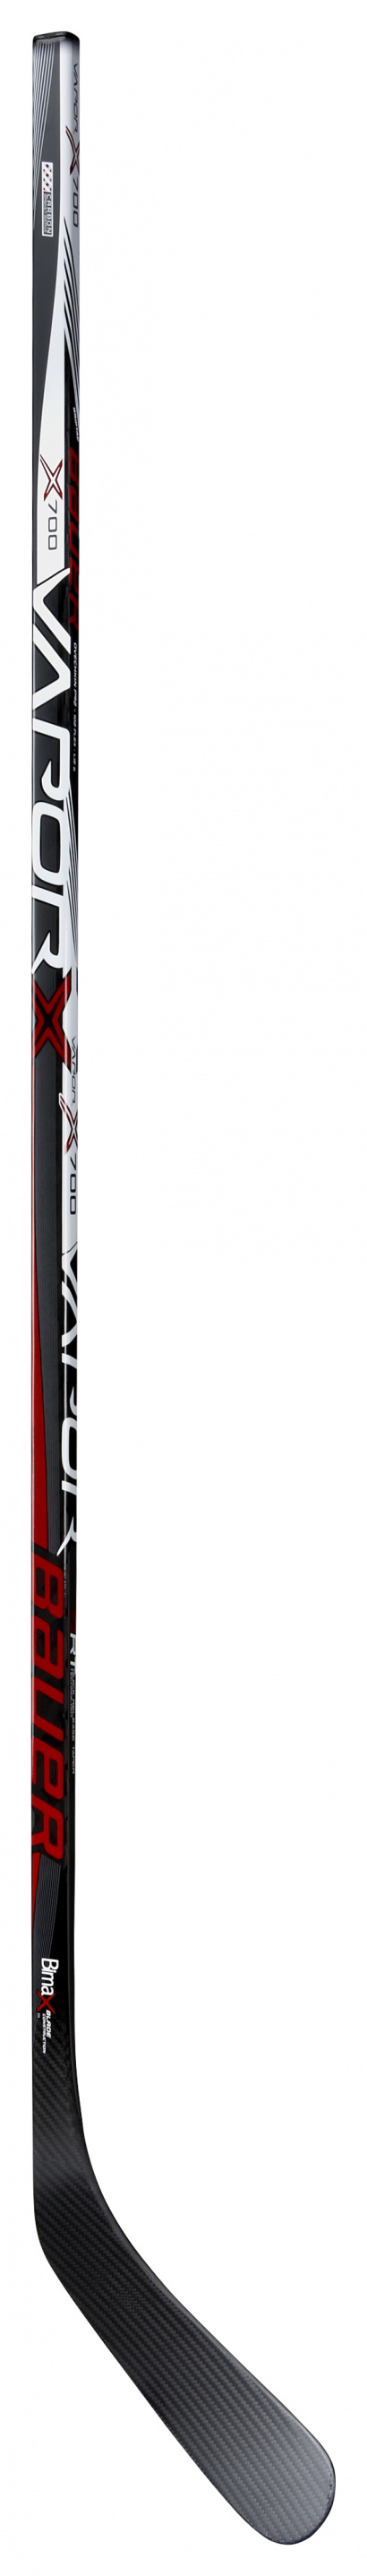 Hockey Stick Bauer VAPOR X 700 GRIP-S16 Jr 50